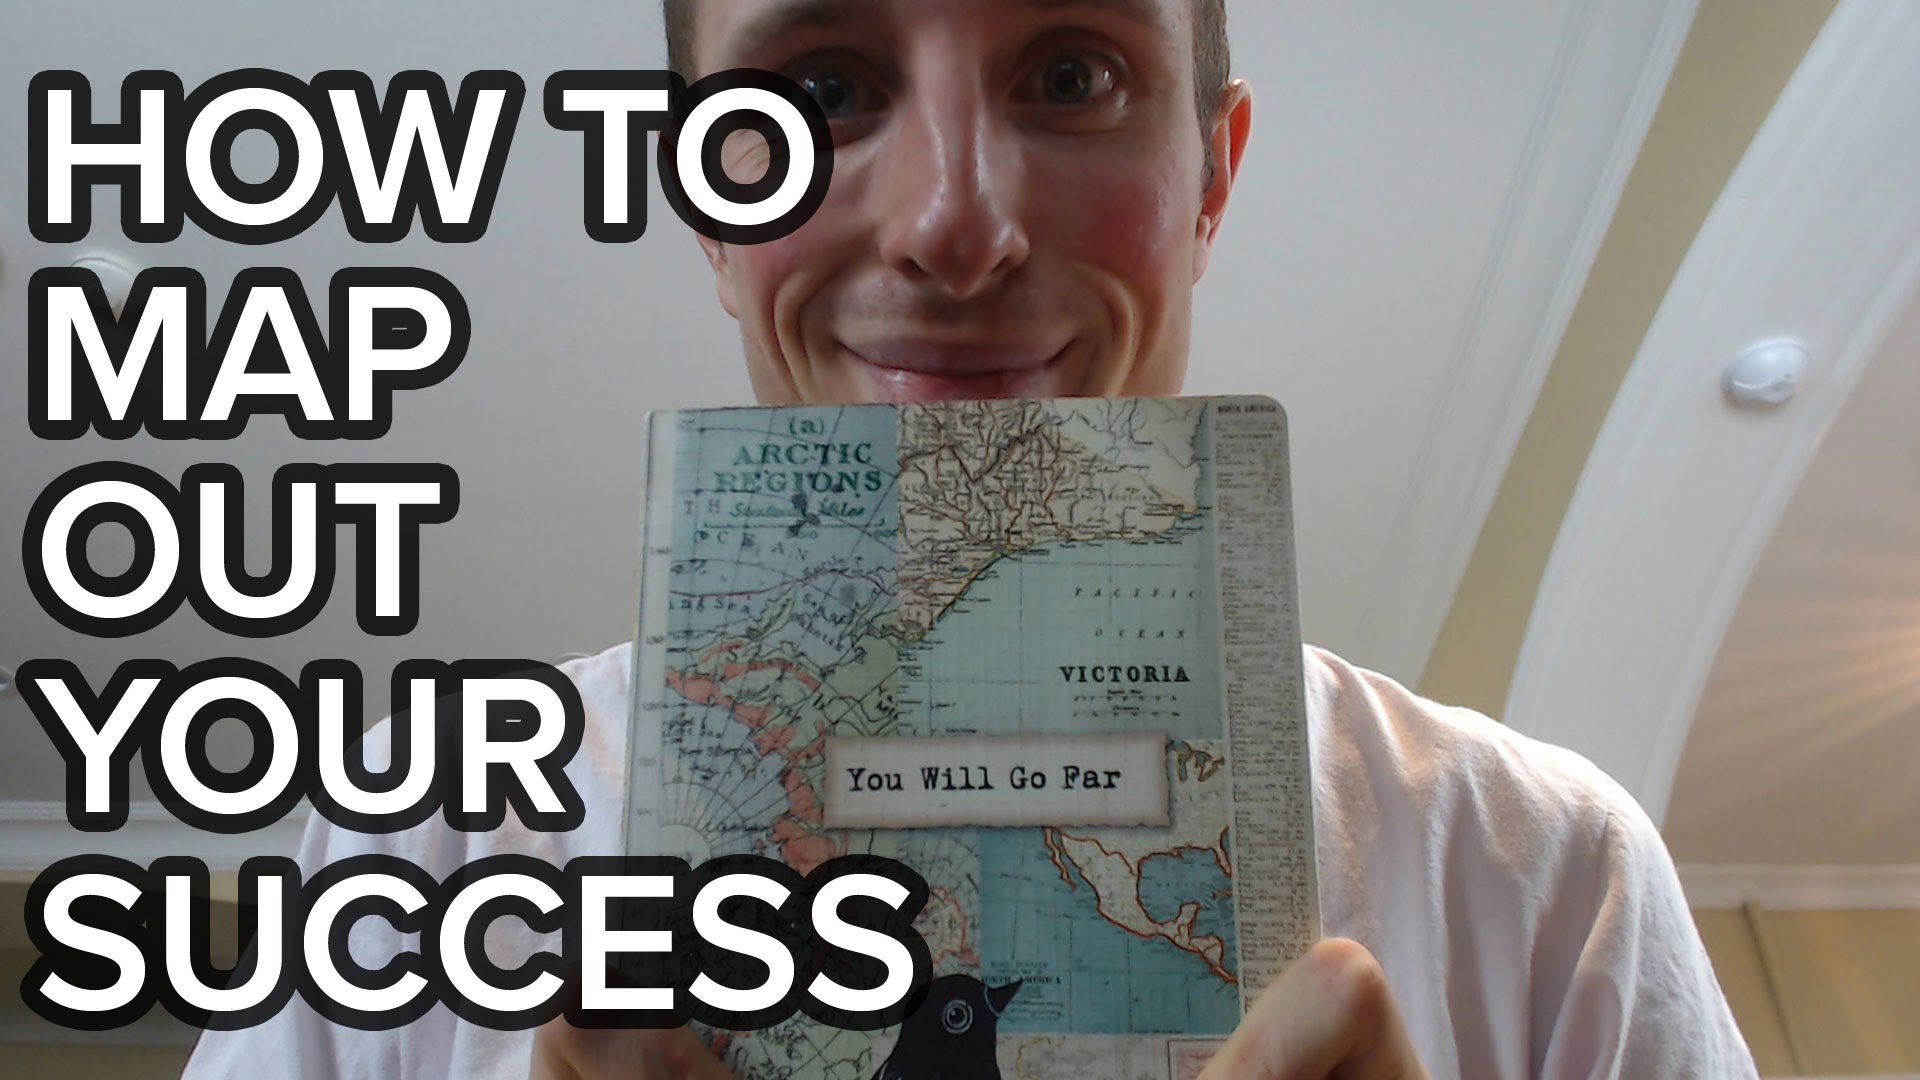 How To Map Out Your Success - Keep A Journal! - LESSON #7